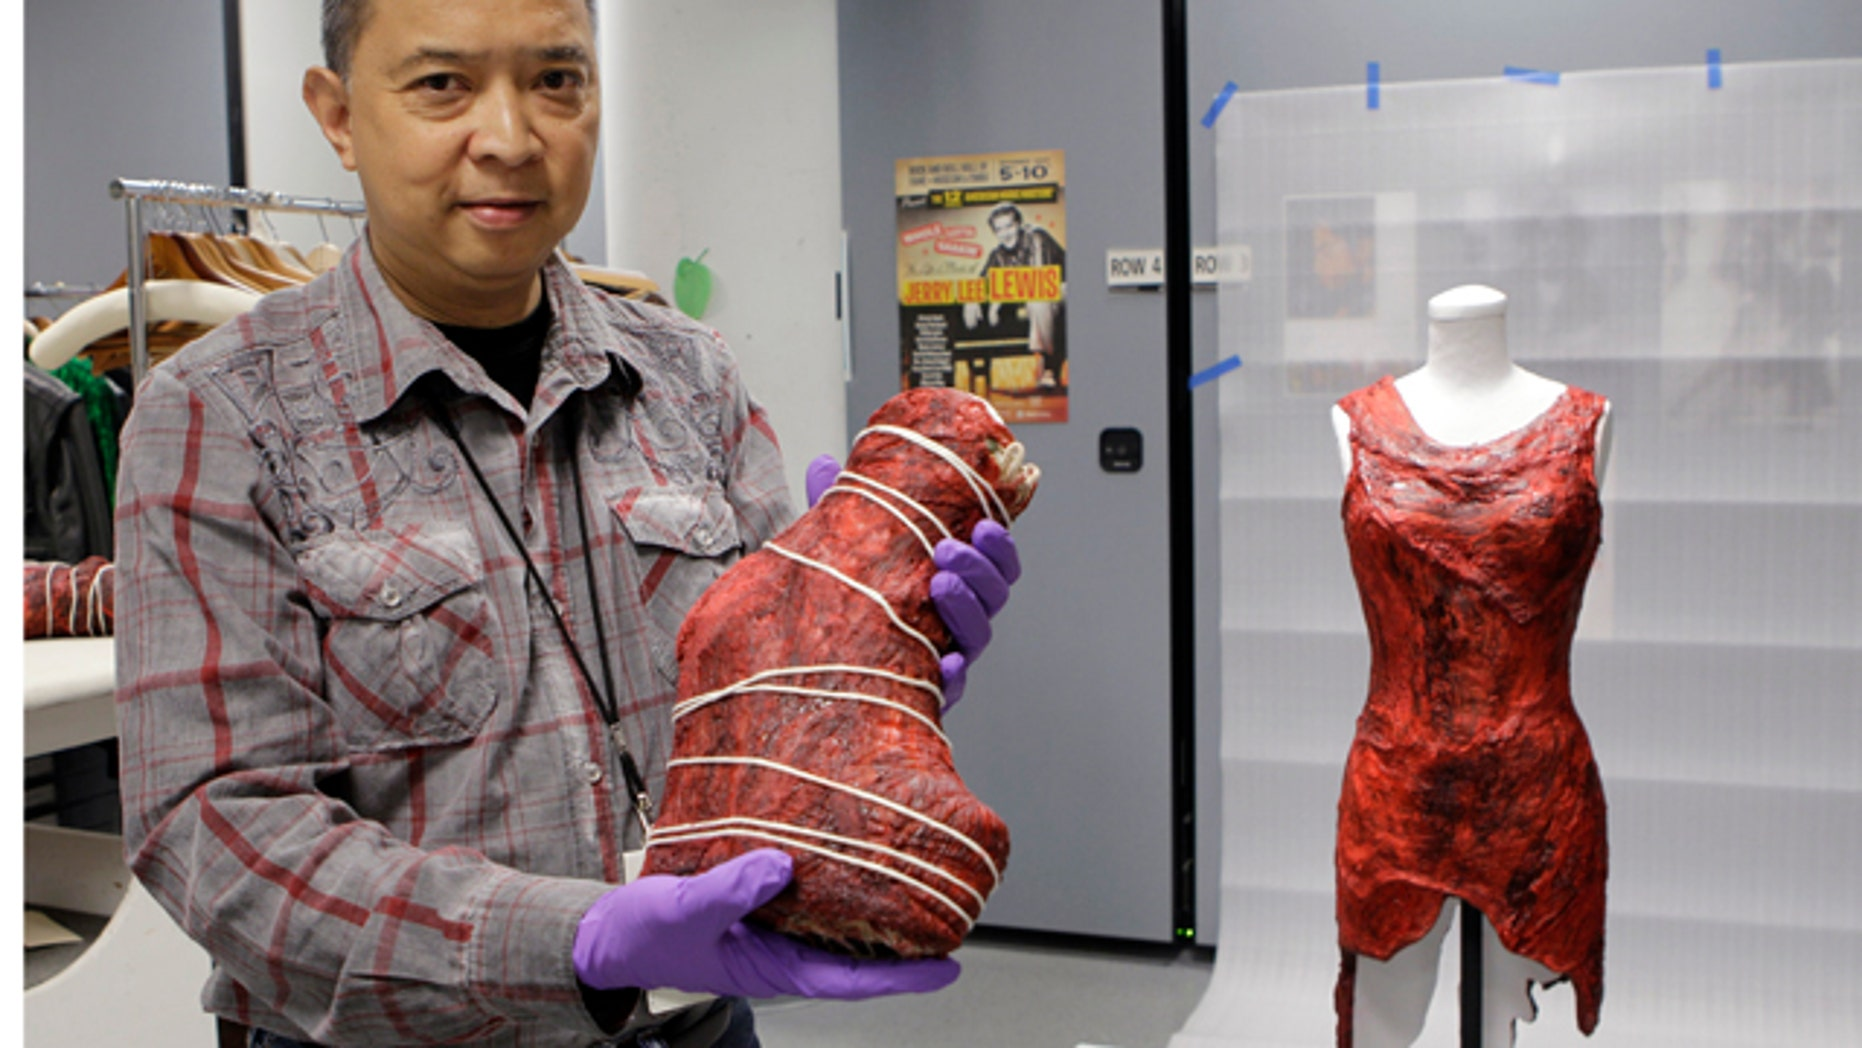 June 14: Jun Francisco, director of collections management at the Rock and Roll Hall of Fame and Museum, displays a boot and dress made of meat worn by Lady Gaga in the museum's vault.